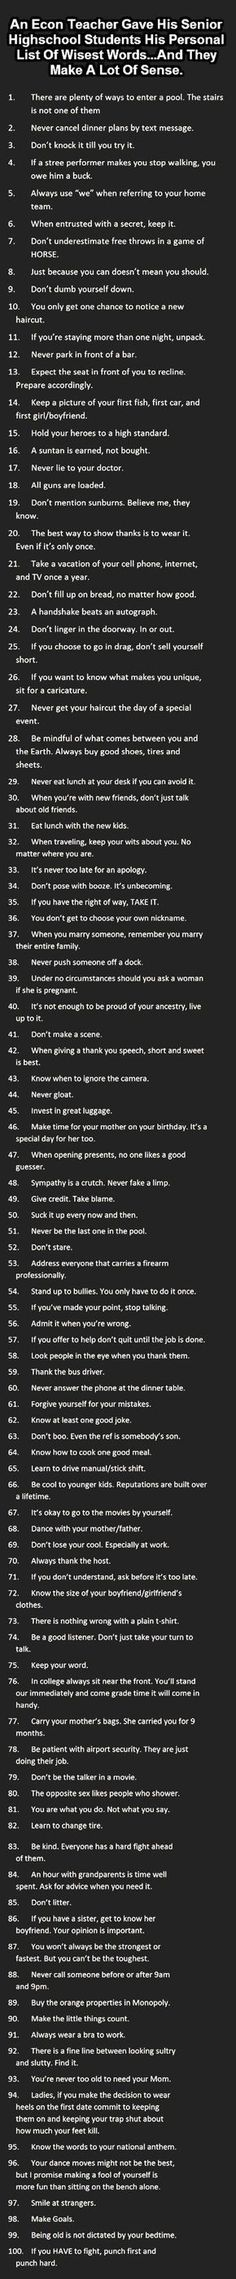 List Of Wisest Words - Couple of mistakes, but solid advice!